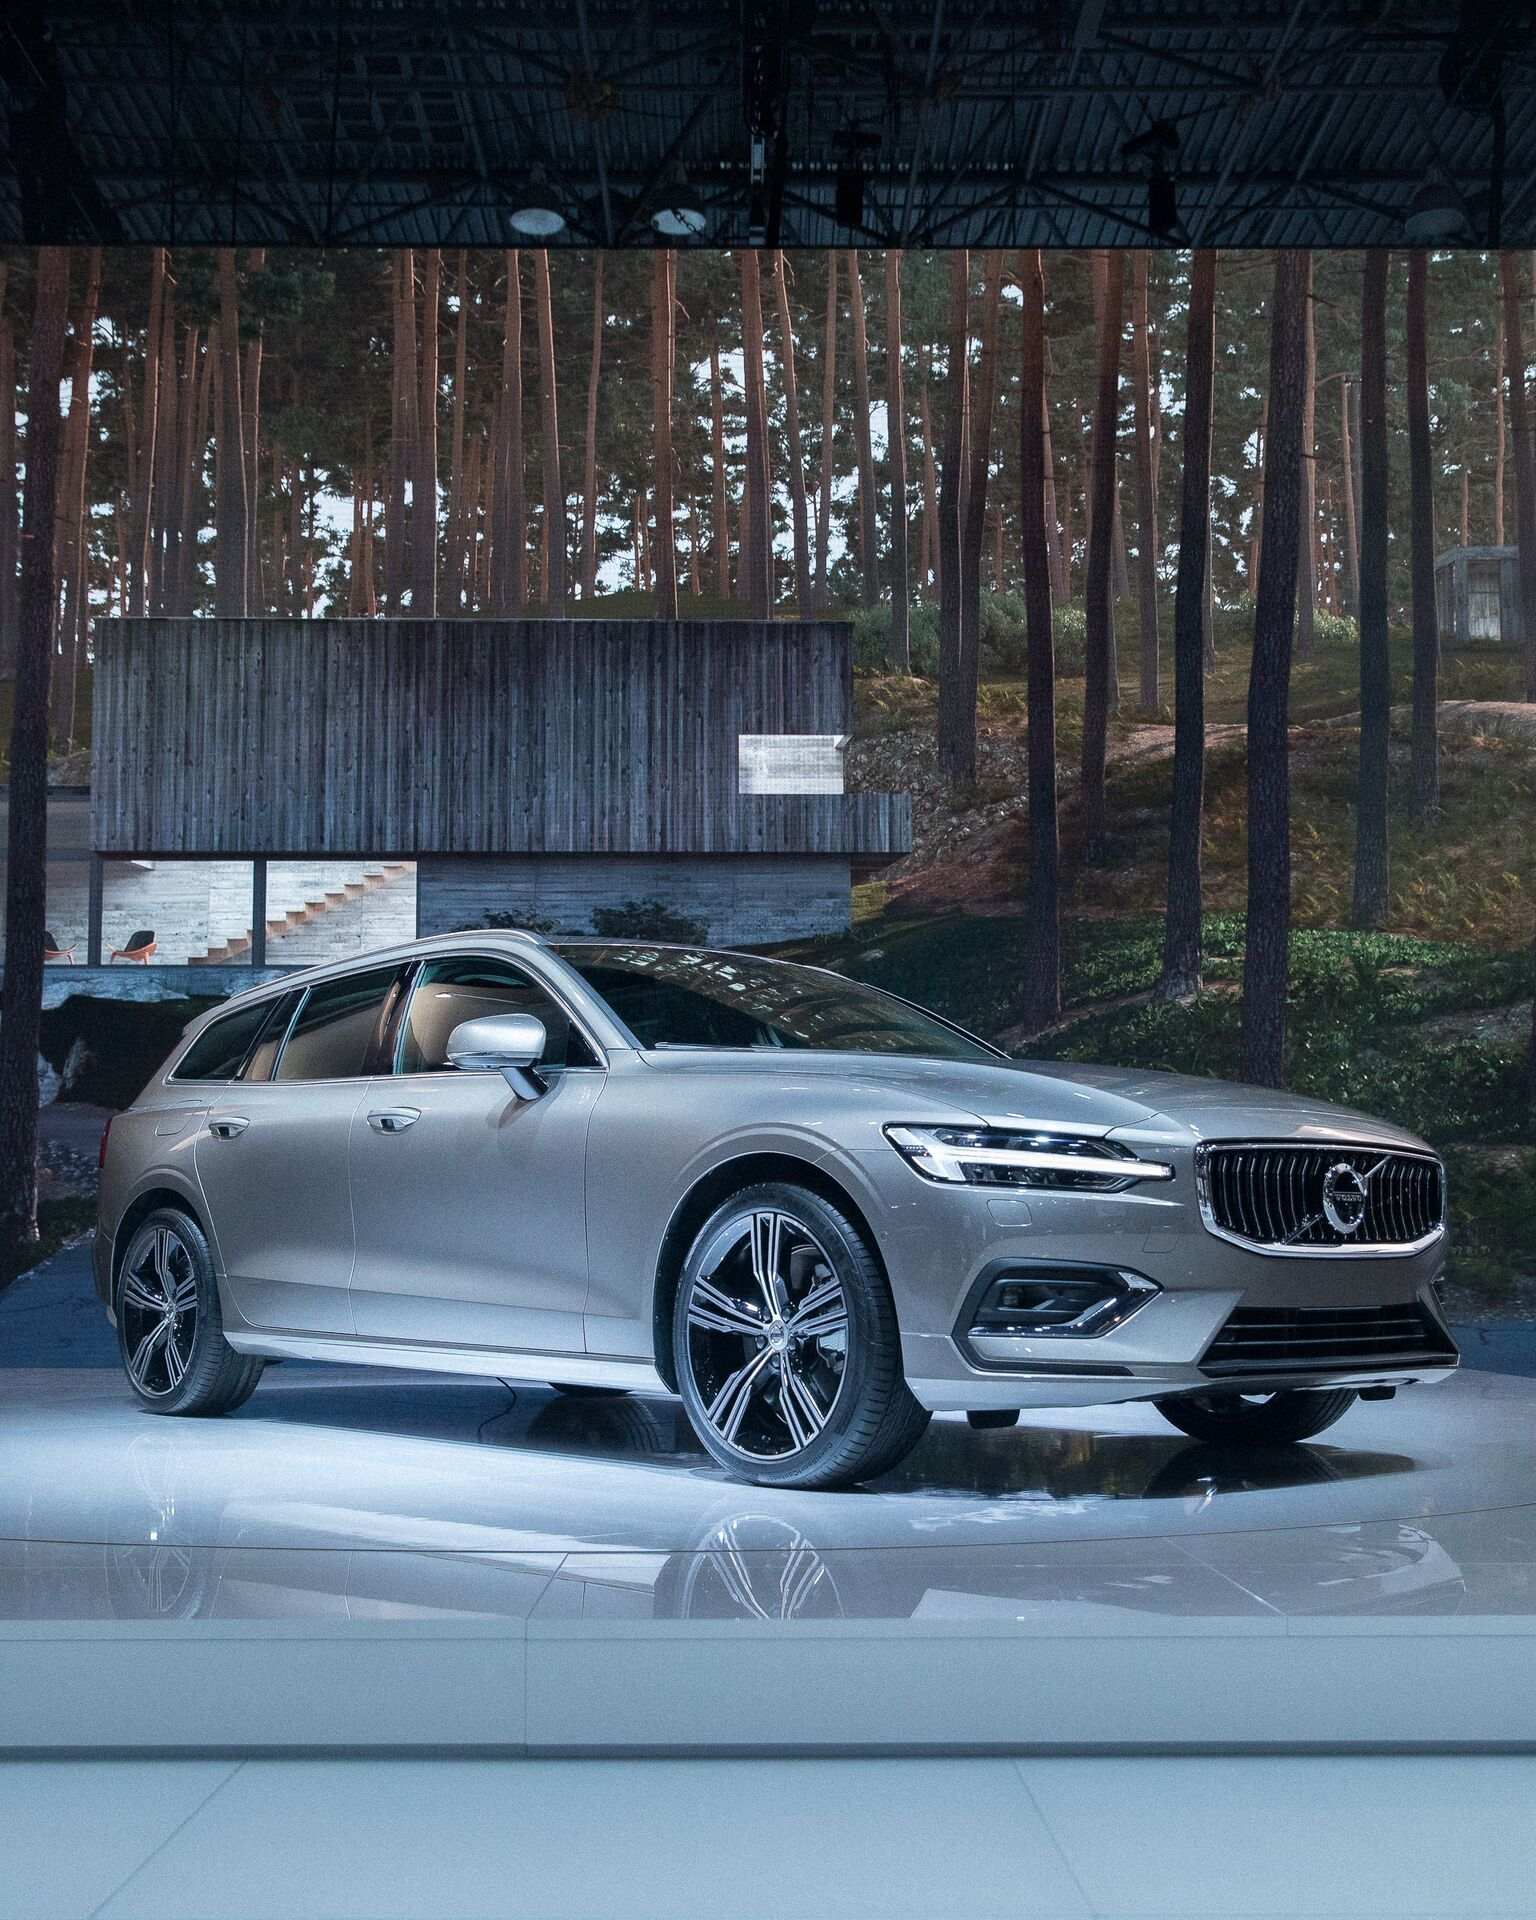 The New Volvo V60 Welcome To A New Generation Of Elegance Sport And Versatility Volvo Cars Volvo Volvo V60